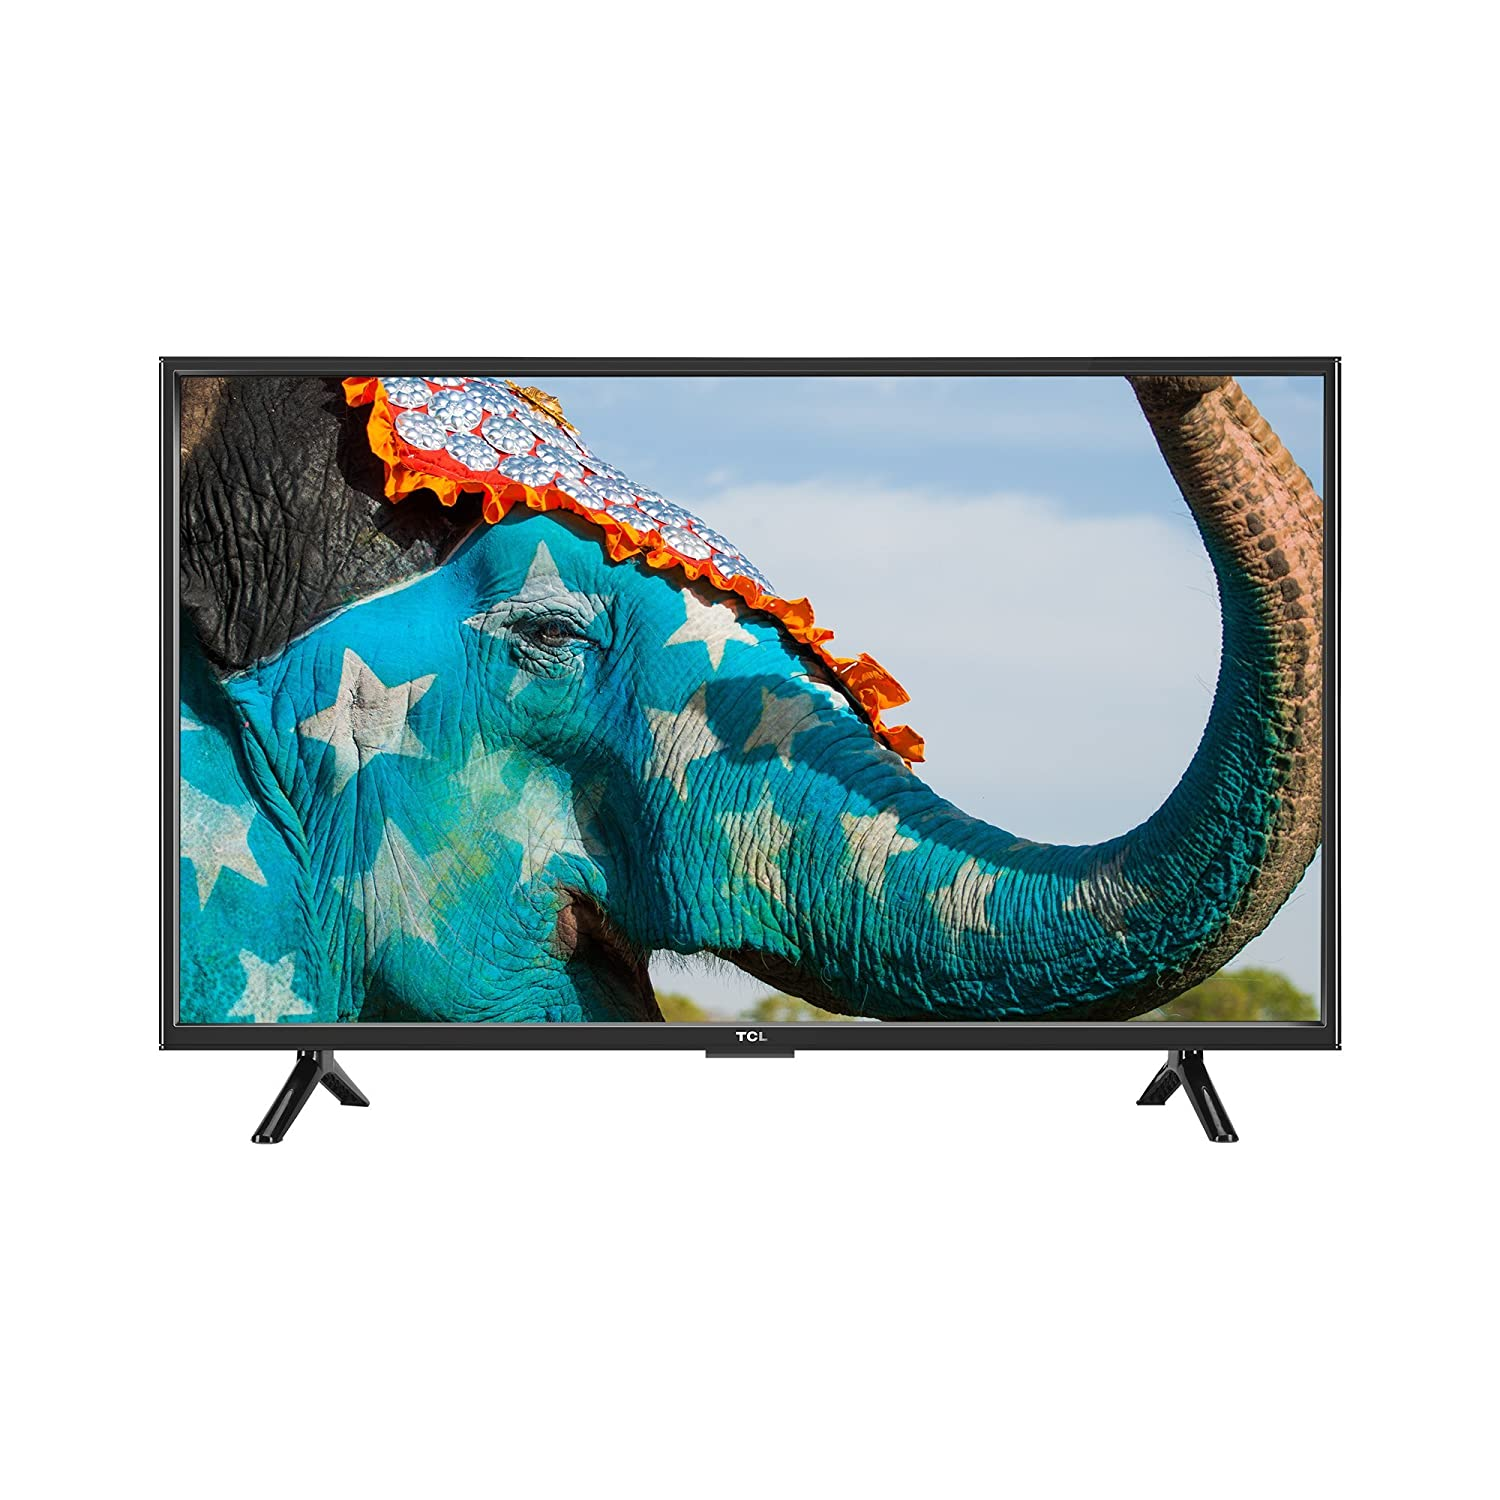 Best 40 inch LED TVs in India under 30000 - TCL L40D2900 Full HD LED TV